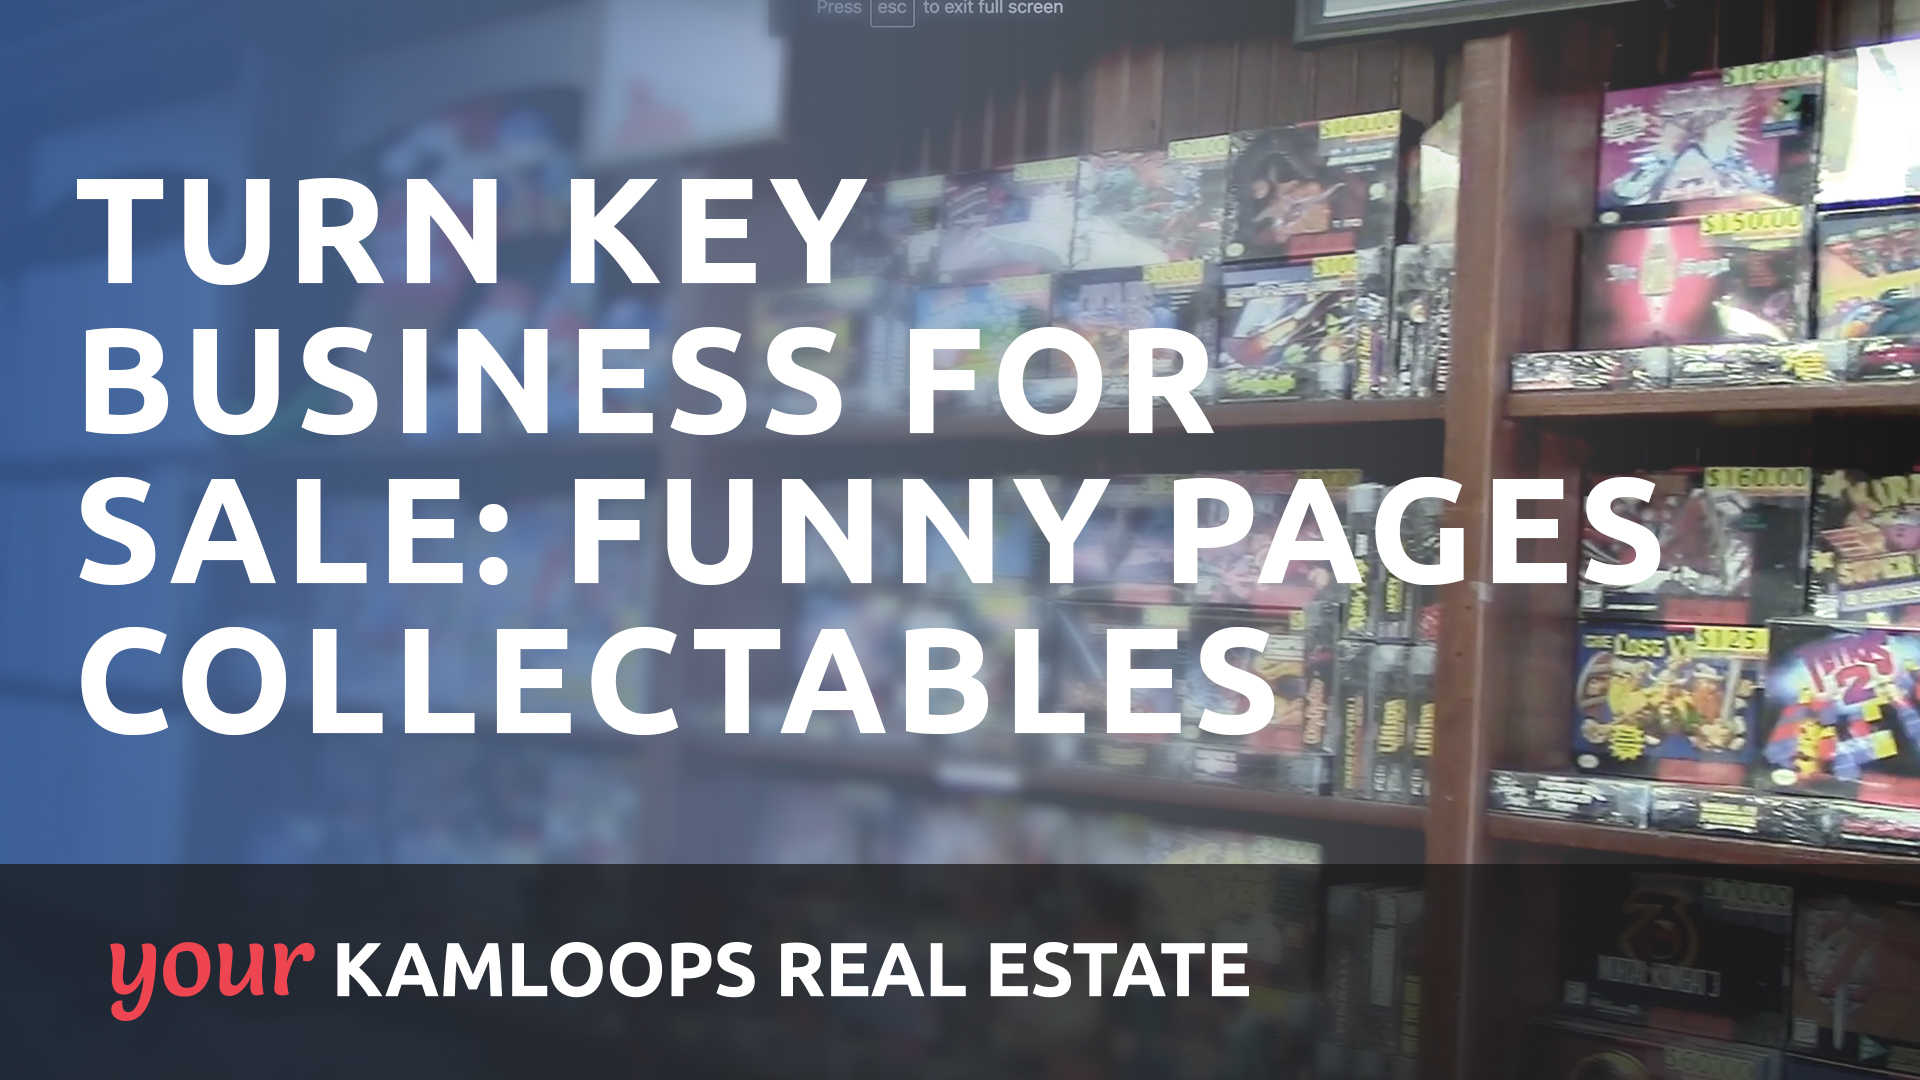 Turn Key Business for Sale: Funny Pages Collectables